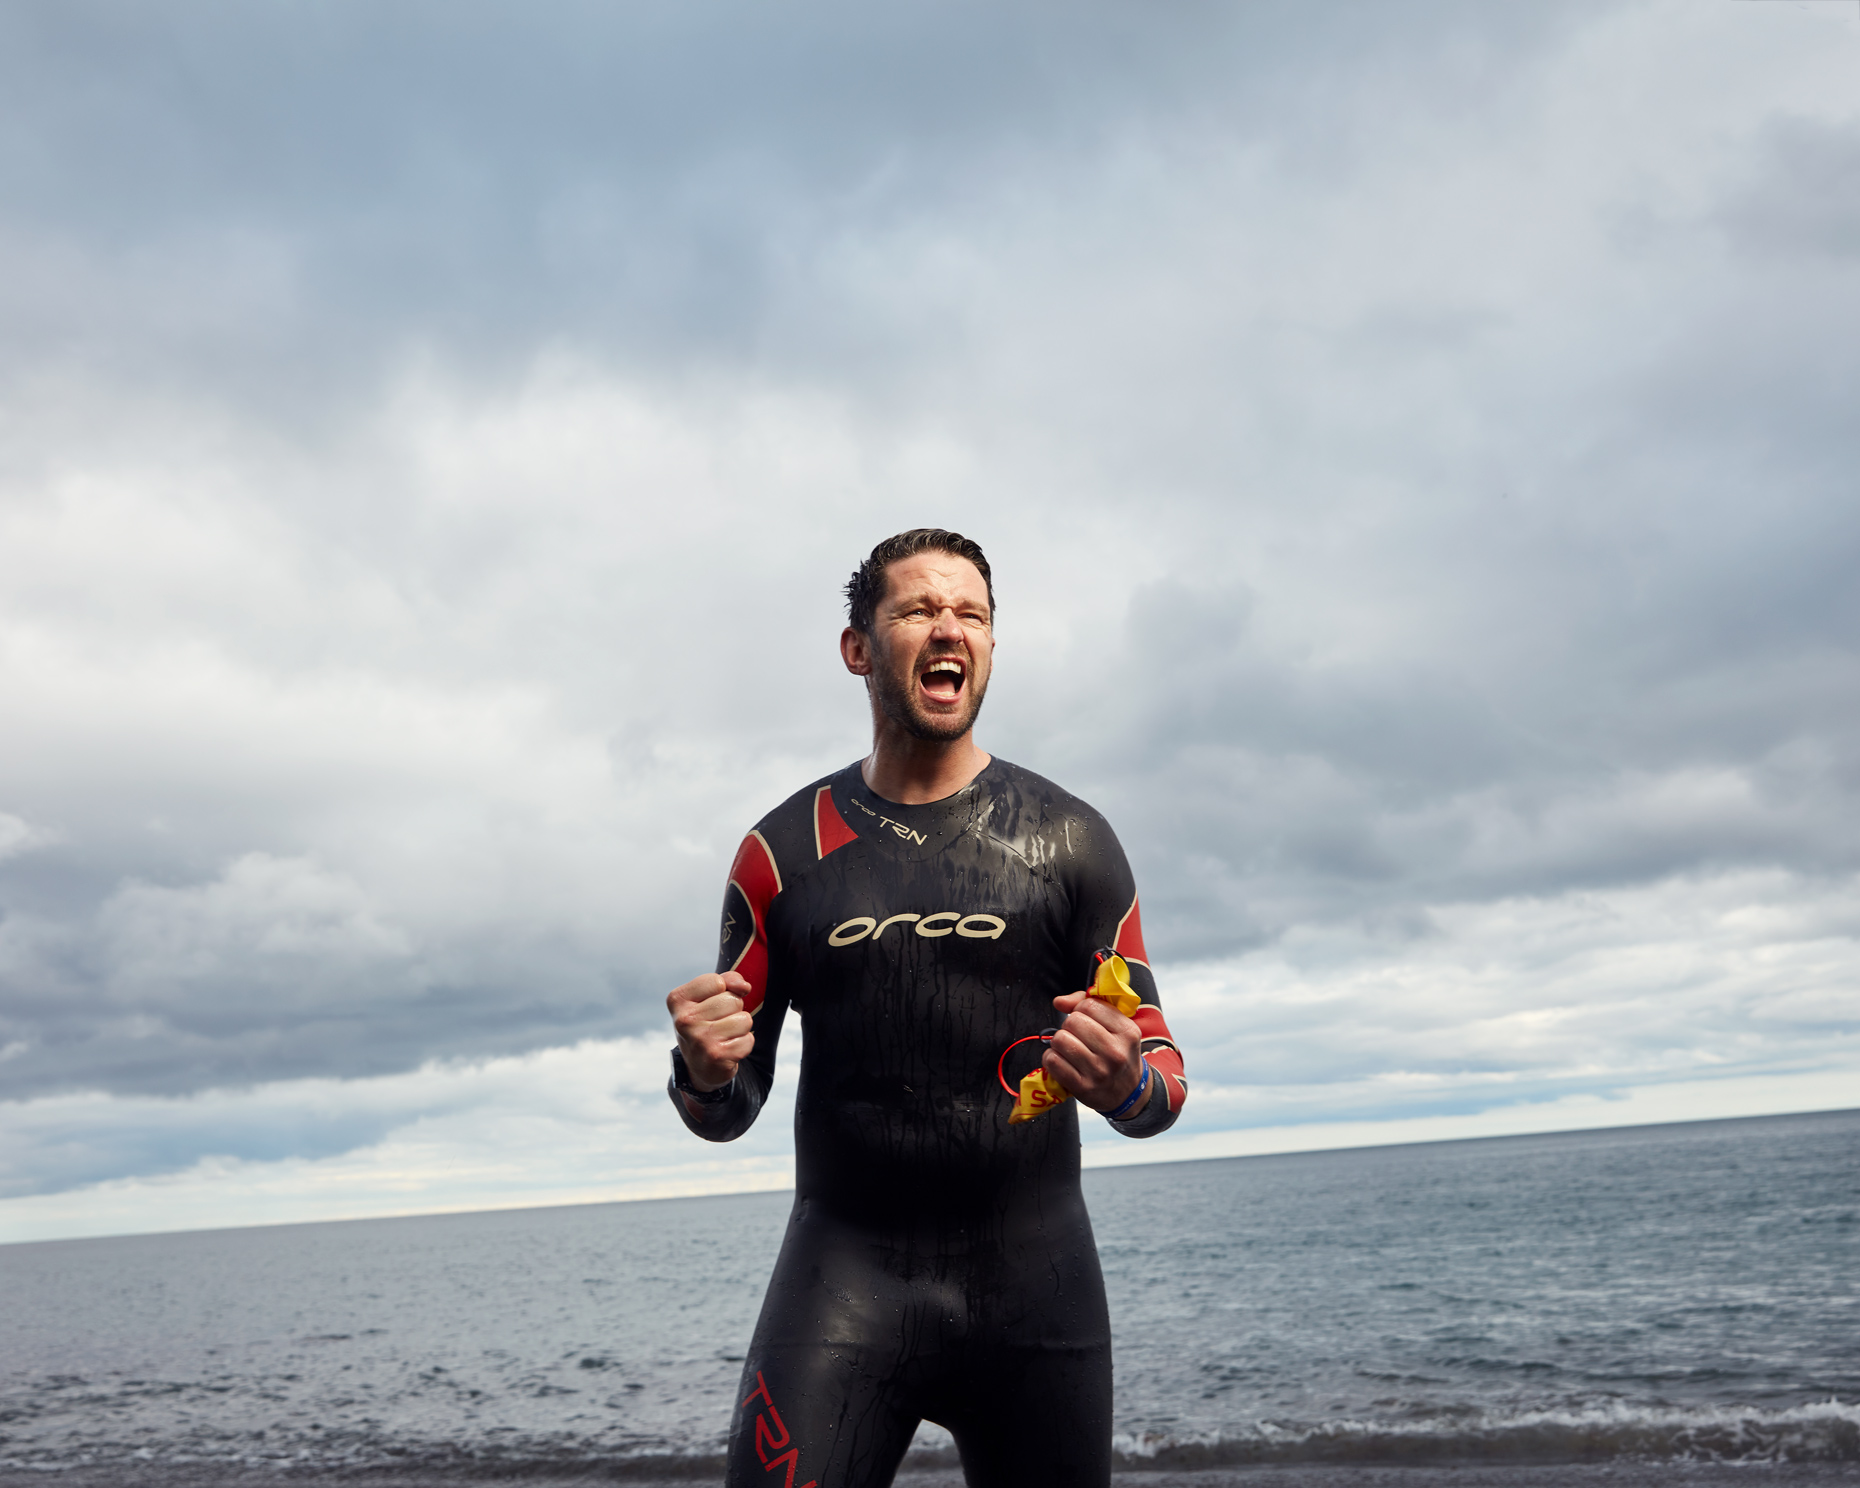 athlete portraits: focused triathlete in wetsuit